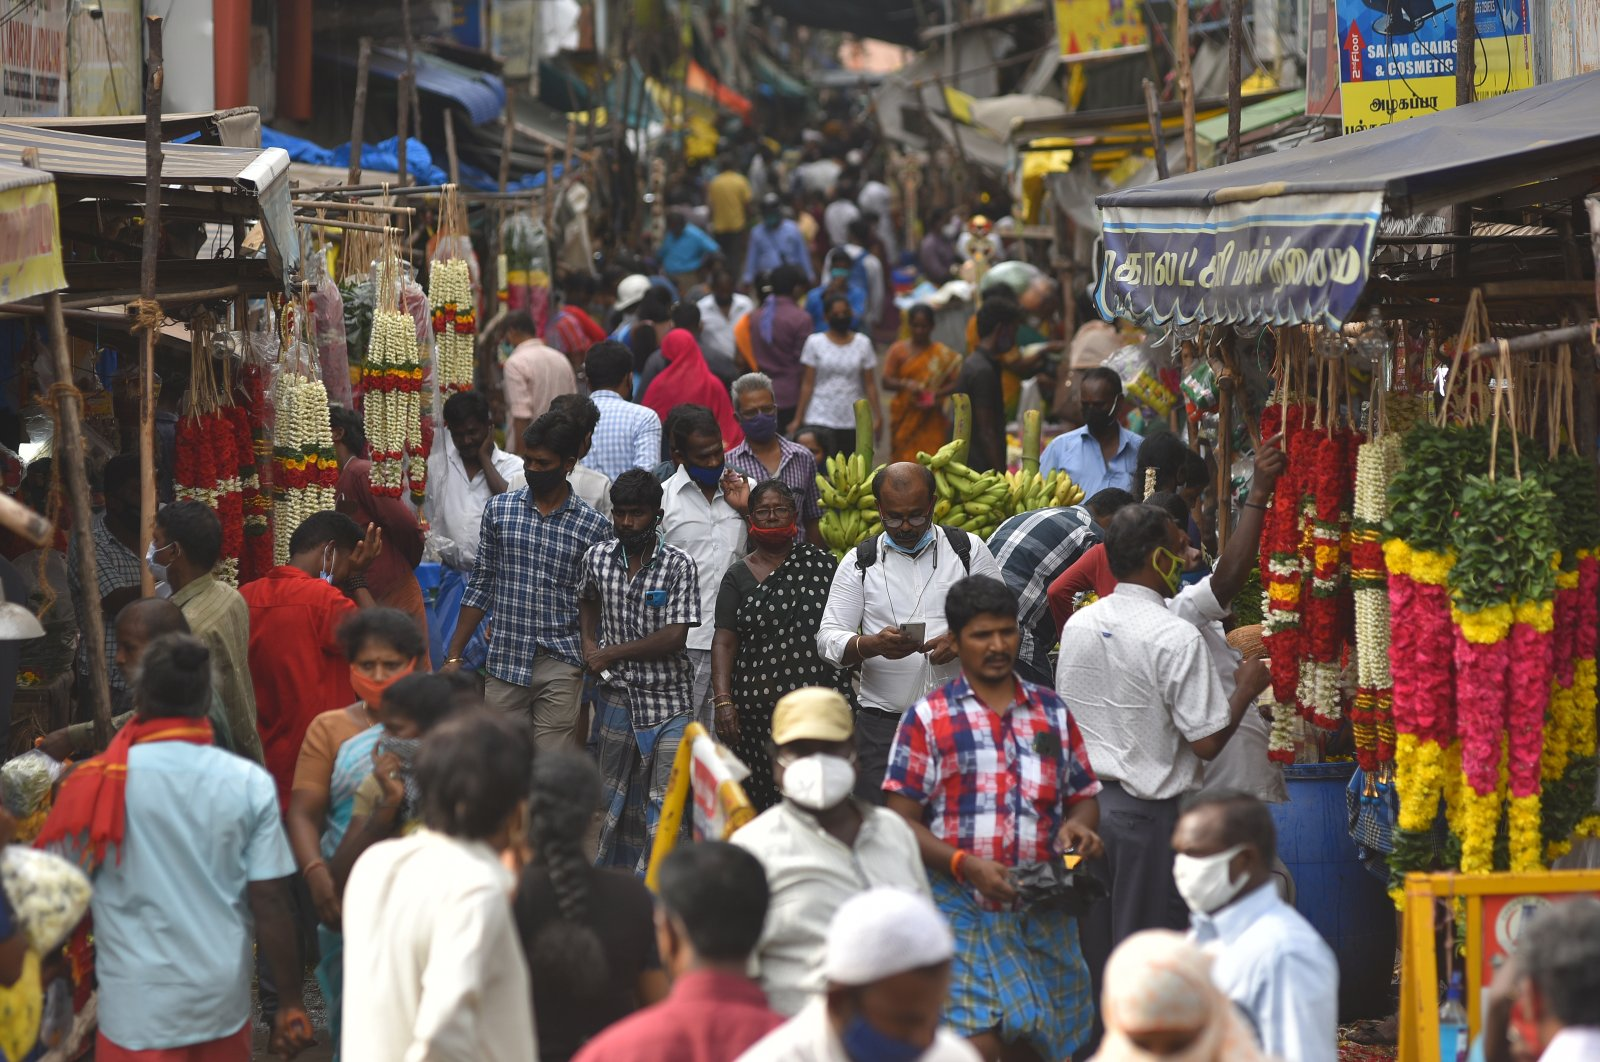 People begin crowding markets following the easing of restrictions, in Chennai, India, June 17, 2021. (EPA Photo)